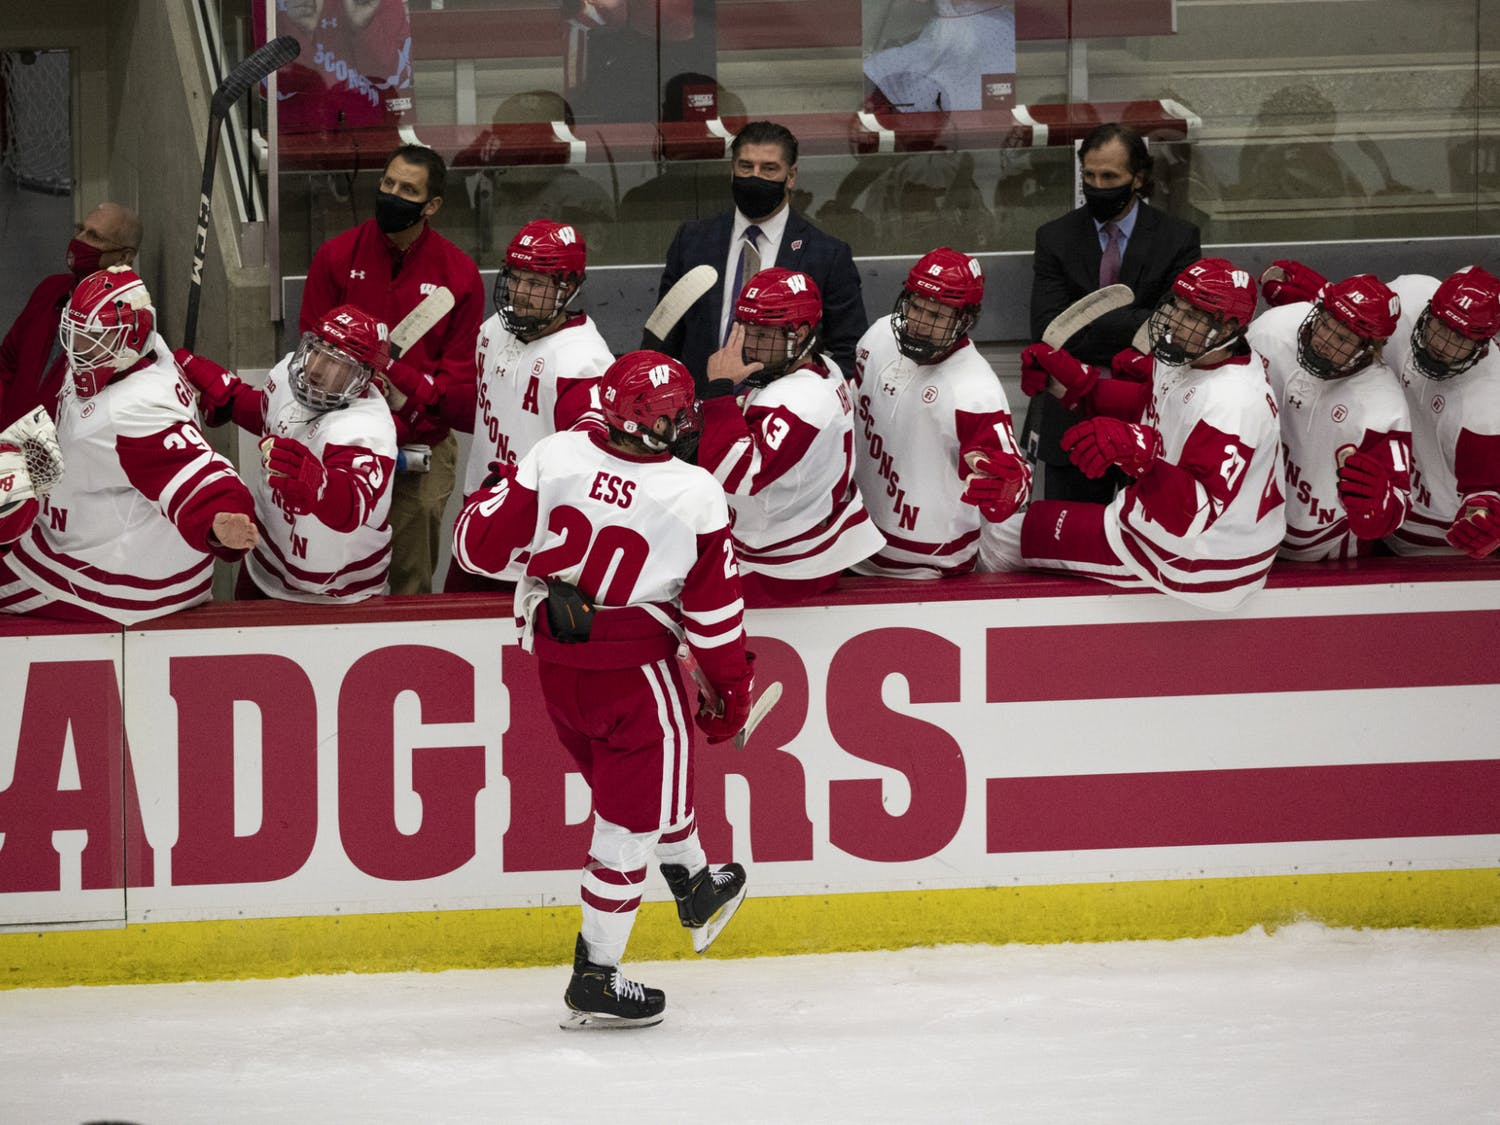 The Badgers are set to be at full strength for the first time in almost two months this weekend against top-ranked Minnesota.